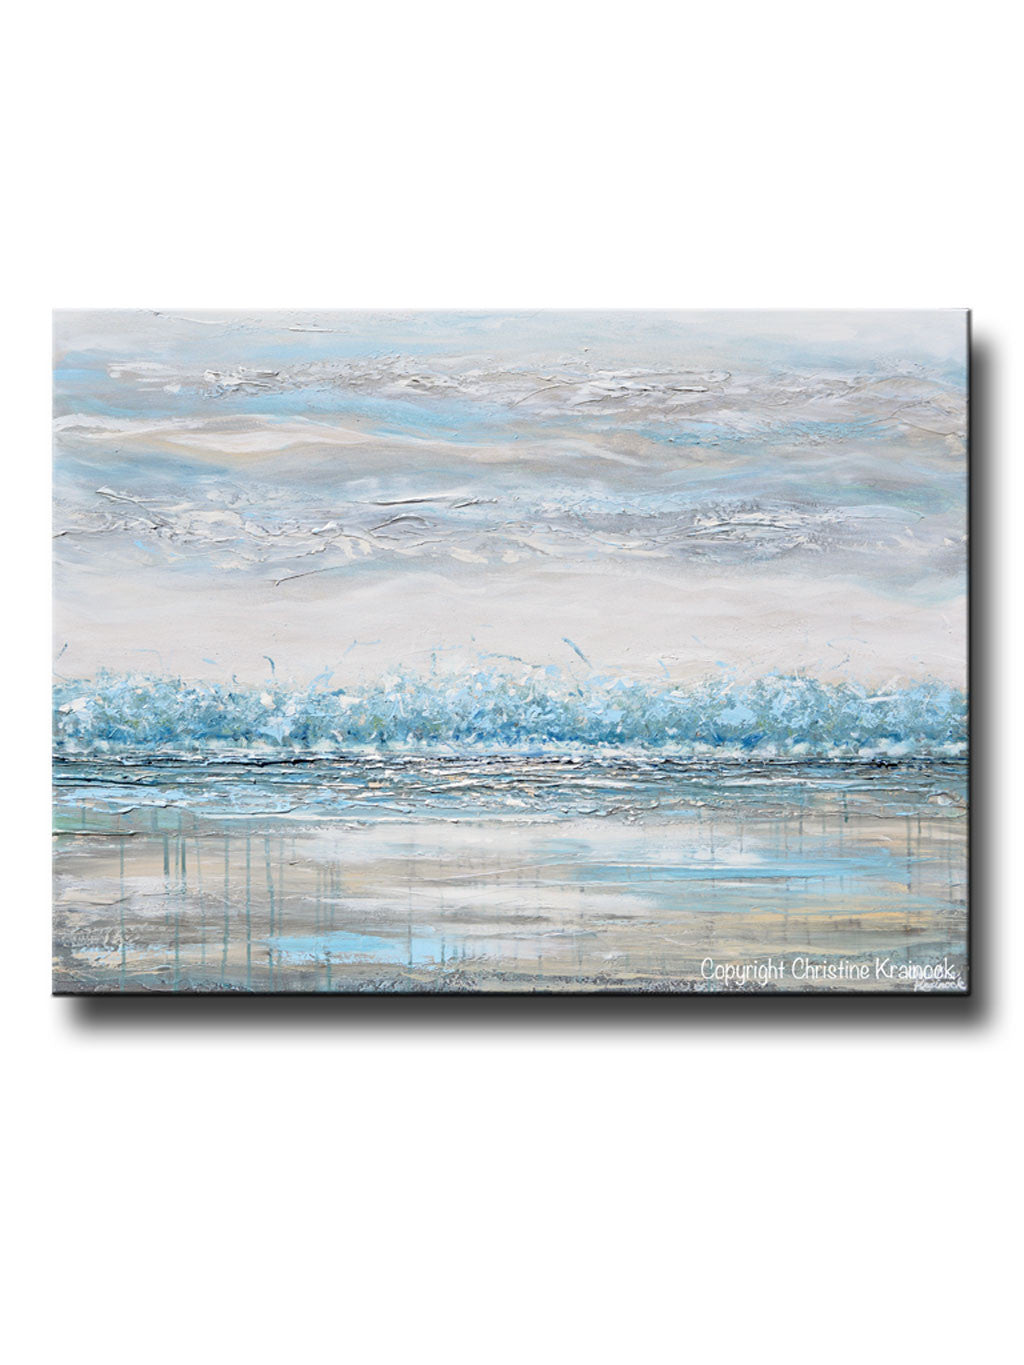 ORIGINAL Art Abstract Painting Landscape Horizon Teal Blue Grey Textured Trees LARGE Canvas Wall Art Decor  sc 1 st  Contemporary Art by Christine & Collections u2013 Contemporary Art by Christine